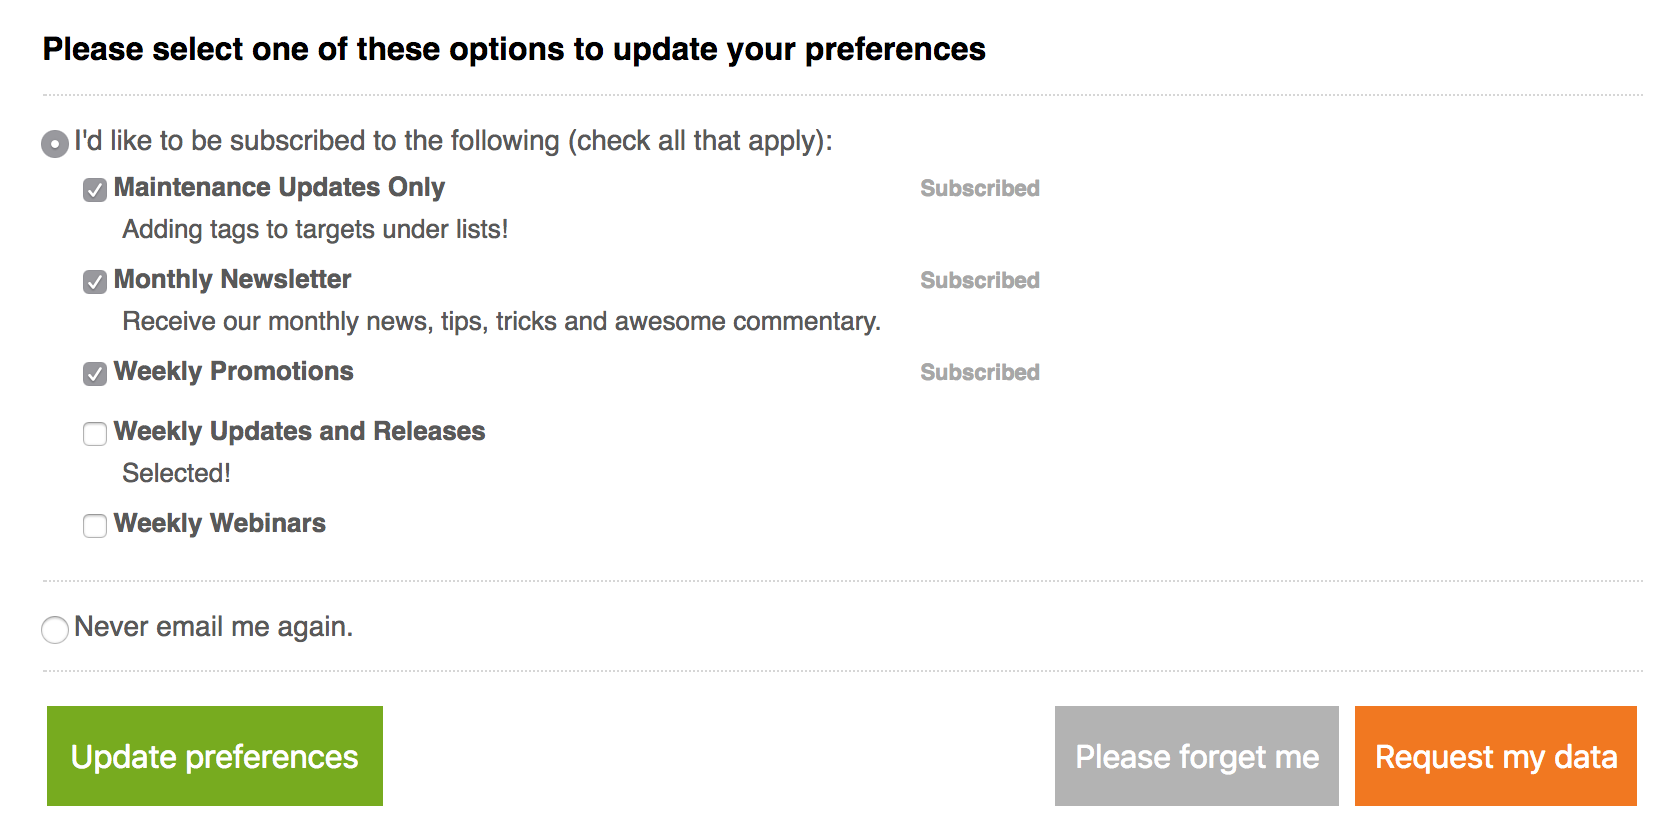 inbox25-manage-preferences-right-to-access-buttons.png